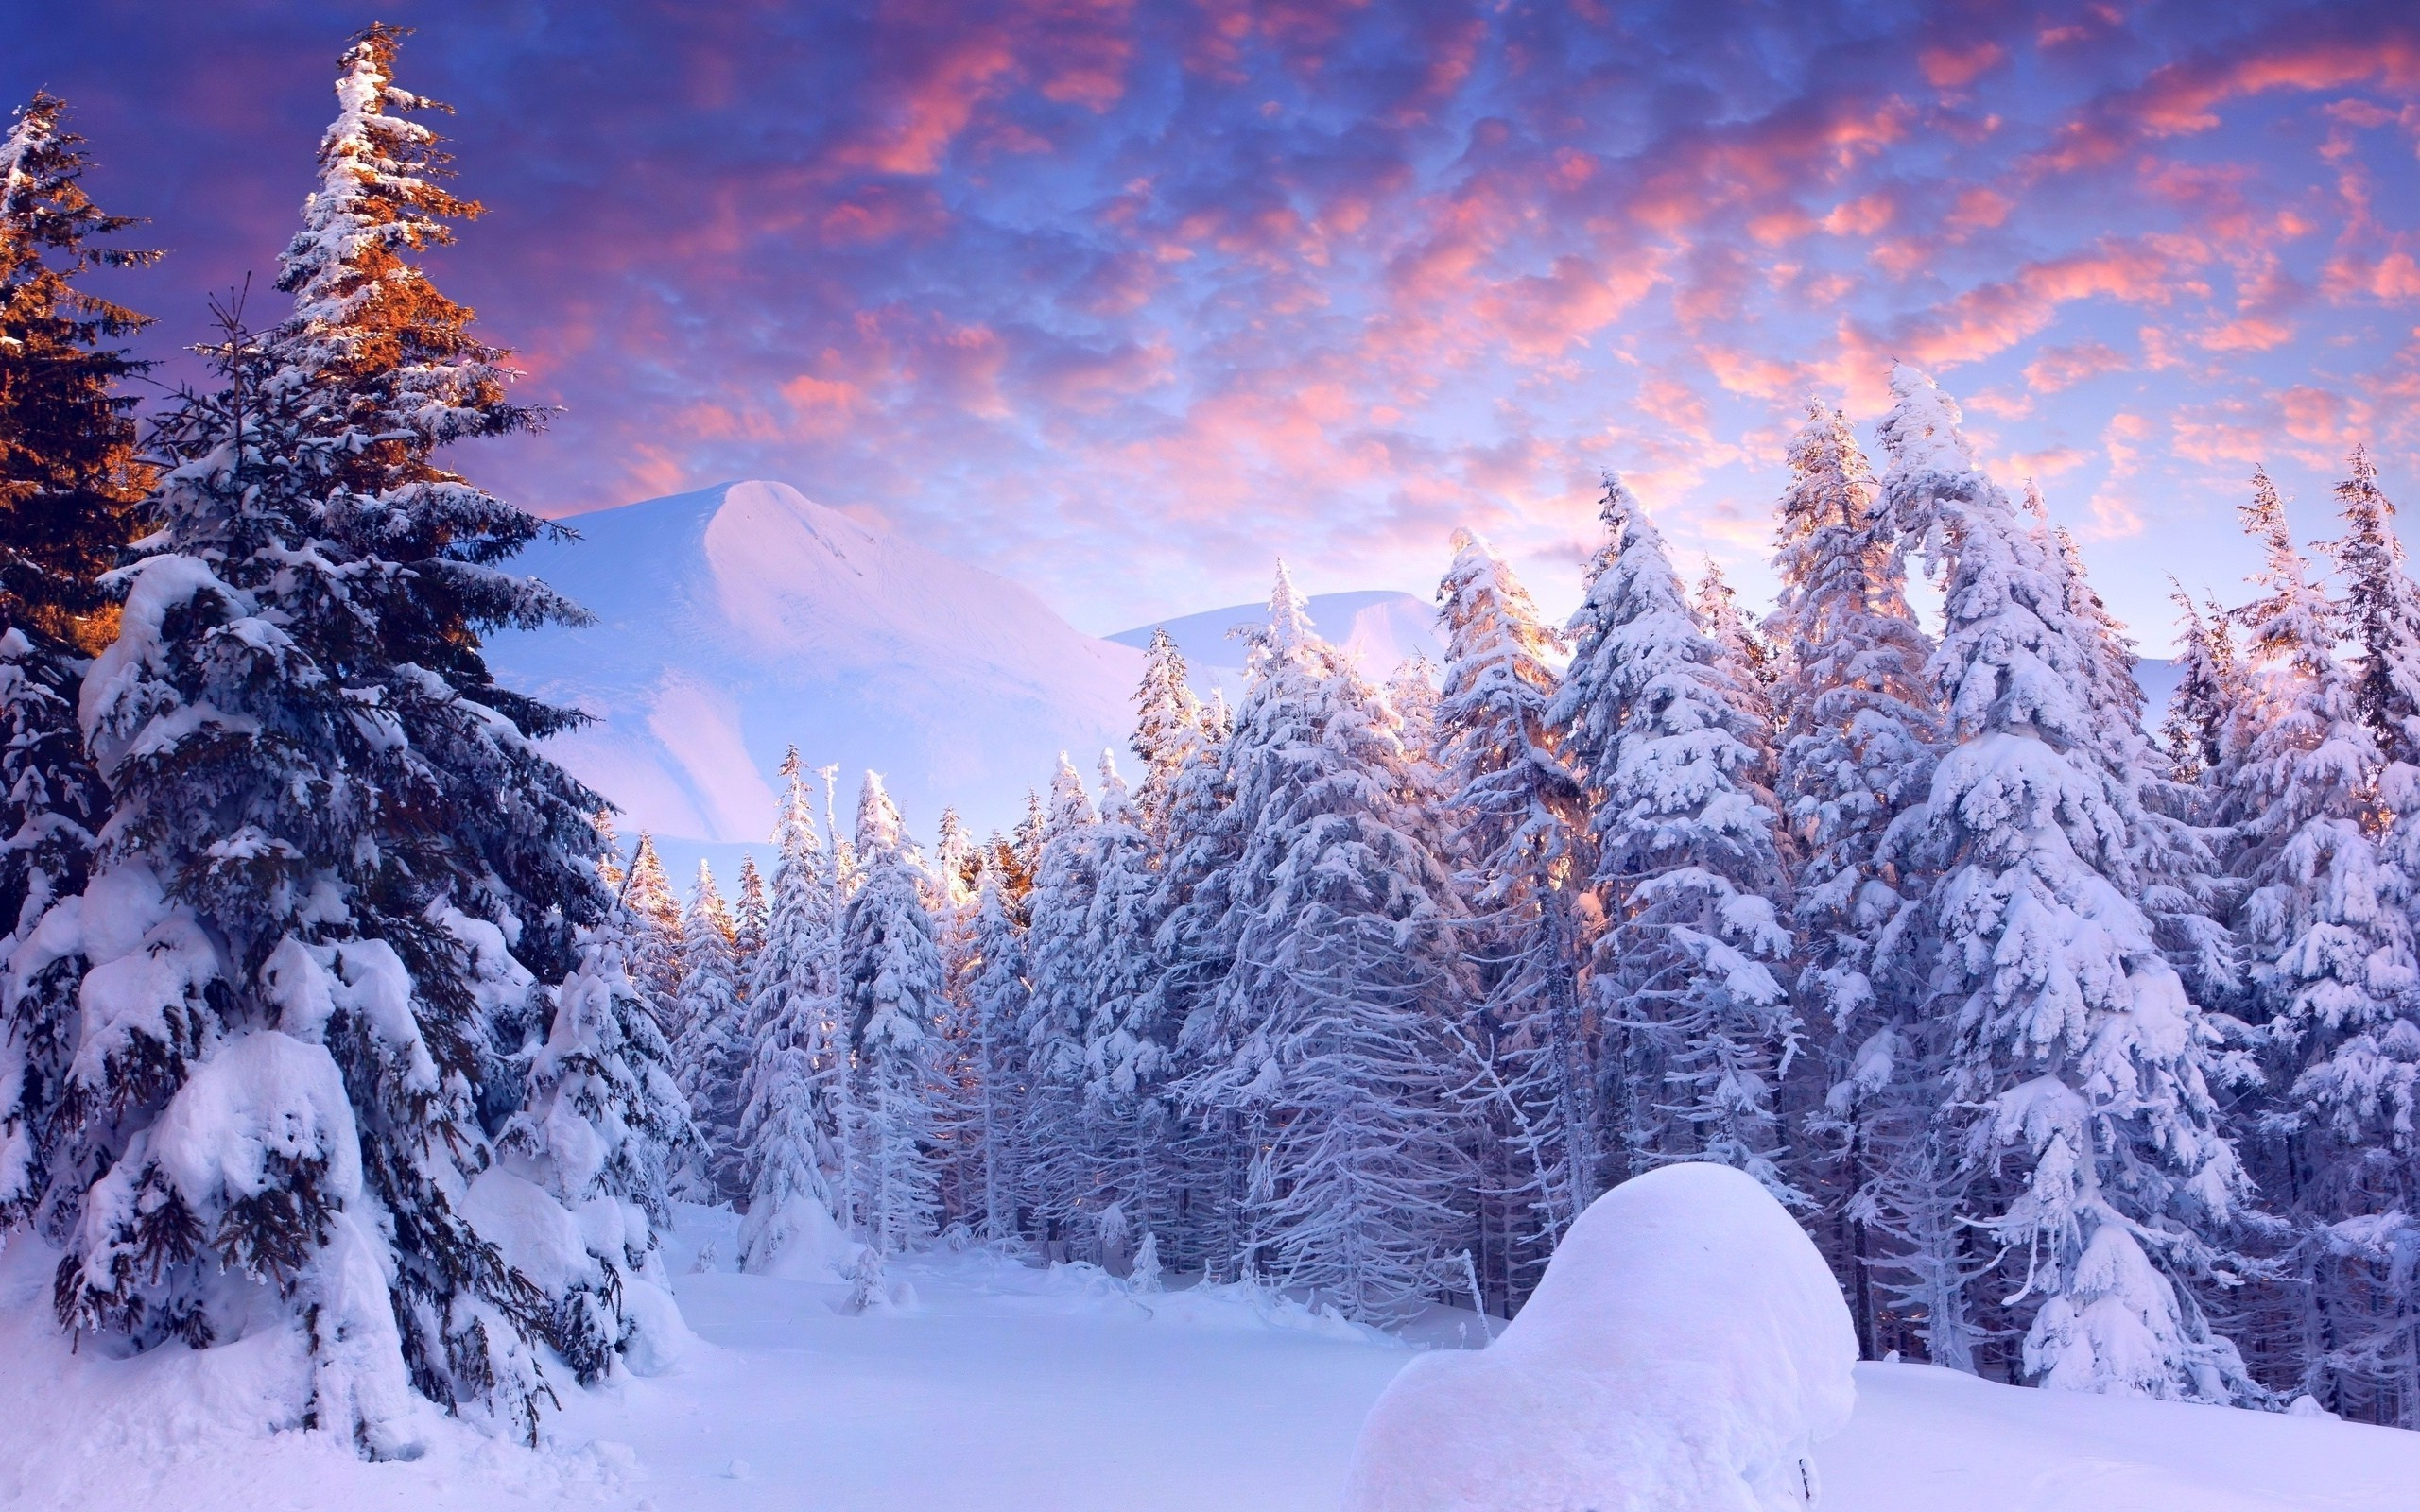 snow forest wallpaper 61 images